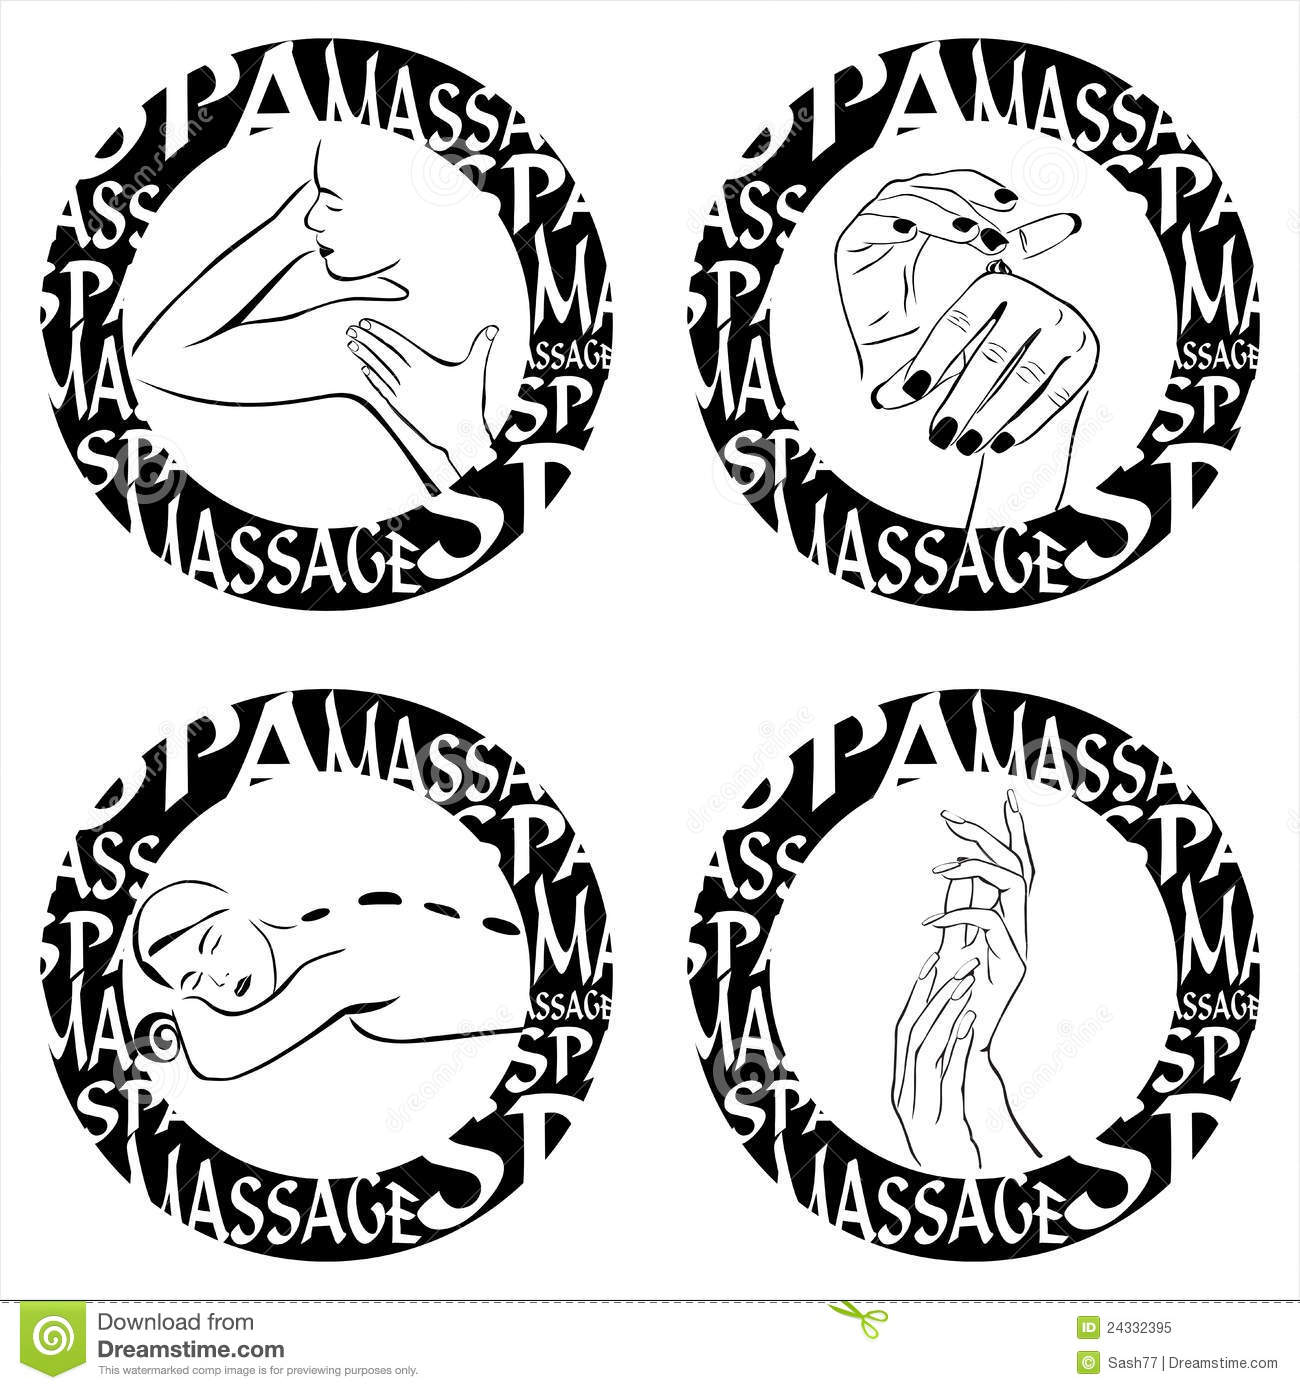 Royalty Free Stock Photo St  Massage Spa Hand Cream Manicure Sign Image24332395 besides Mac Feline Kohl Power Review Swatches besides Vector Of A Cartoon Relaxed Woman Taking A Bath Coloring Page Outline By Ron Leishman 16845 moreover 1958 besides 224. on skin care people